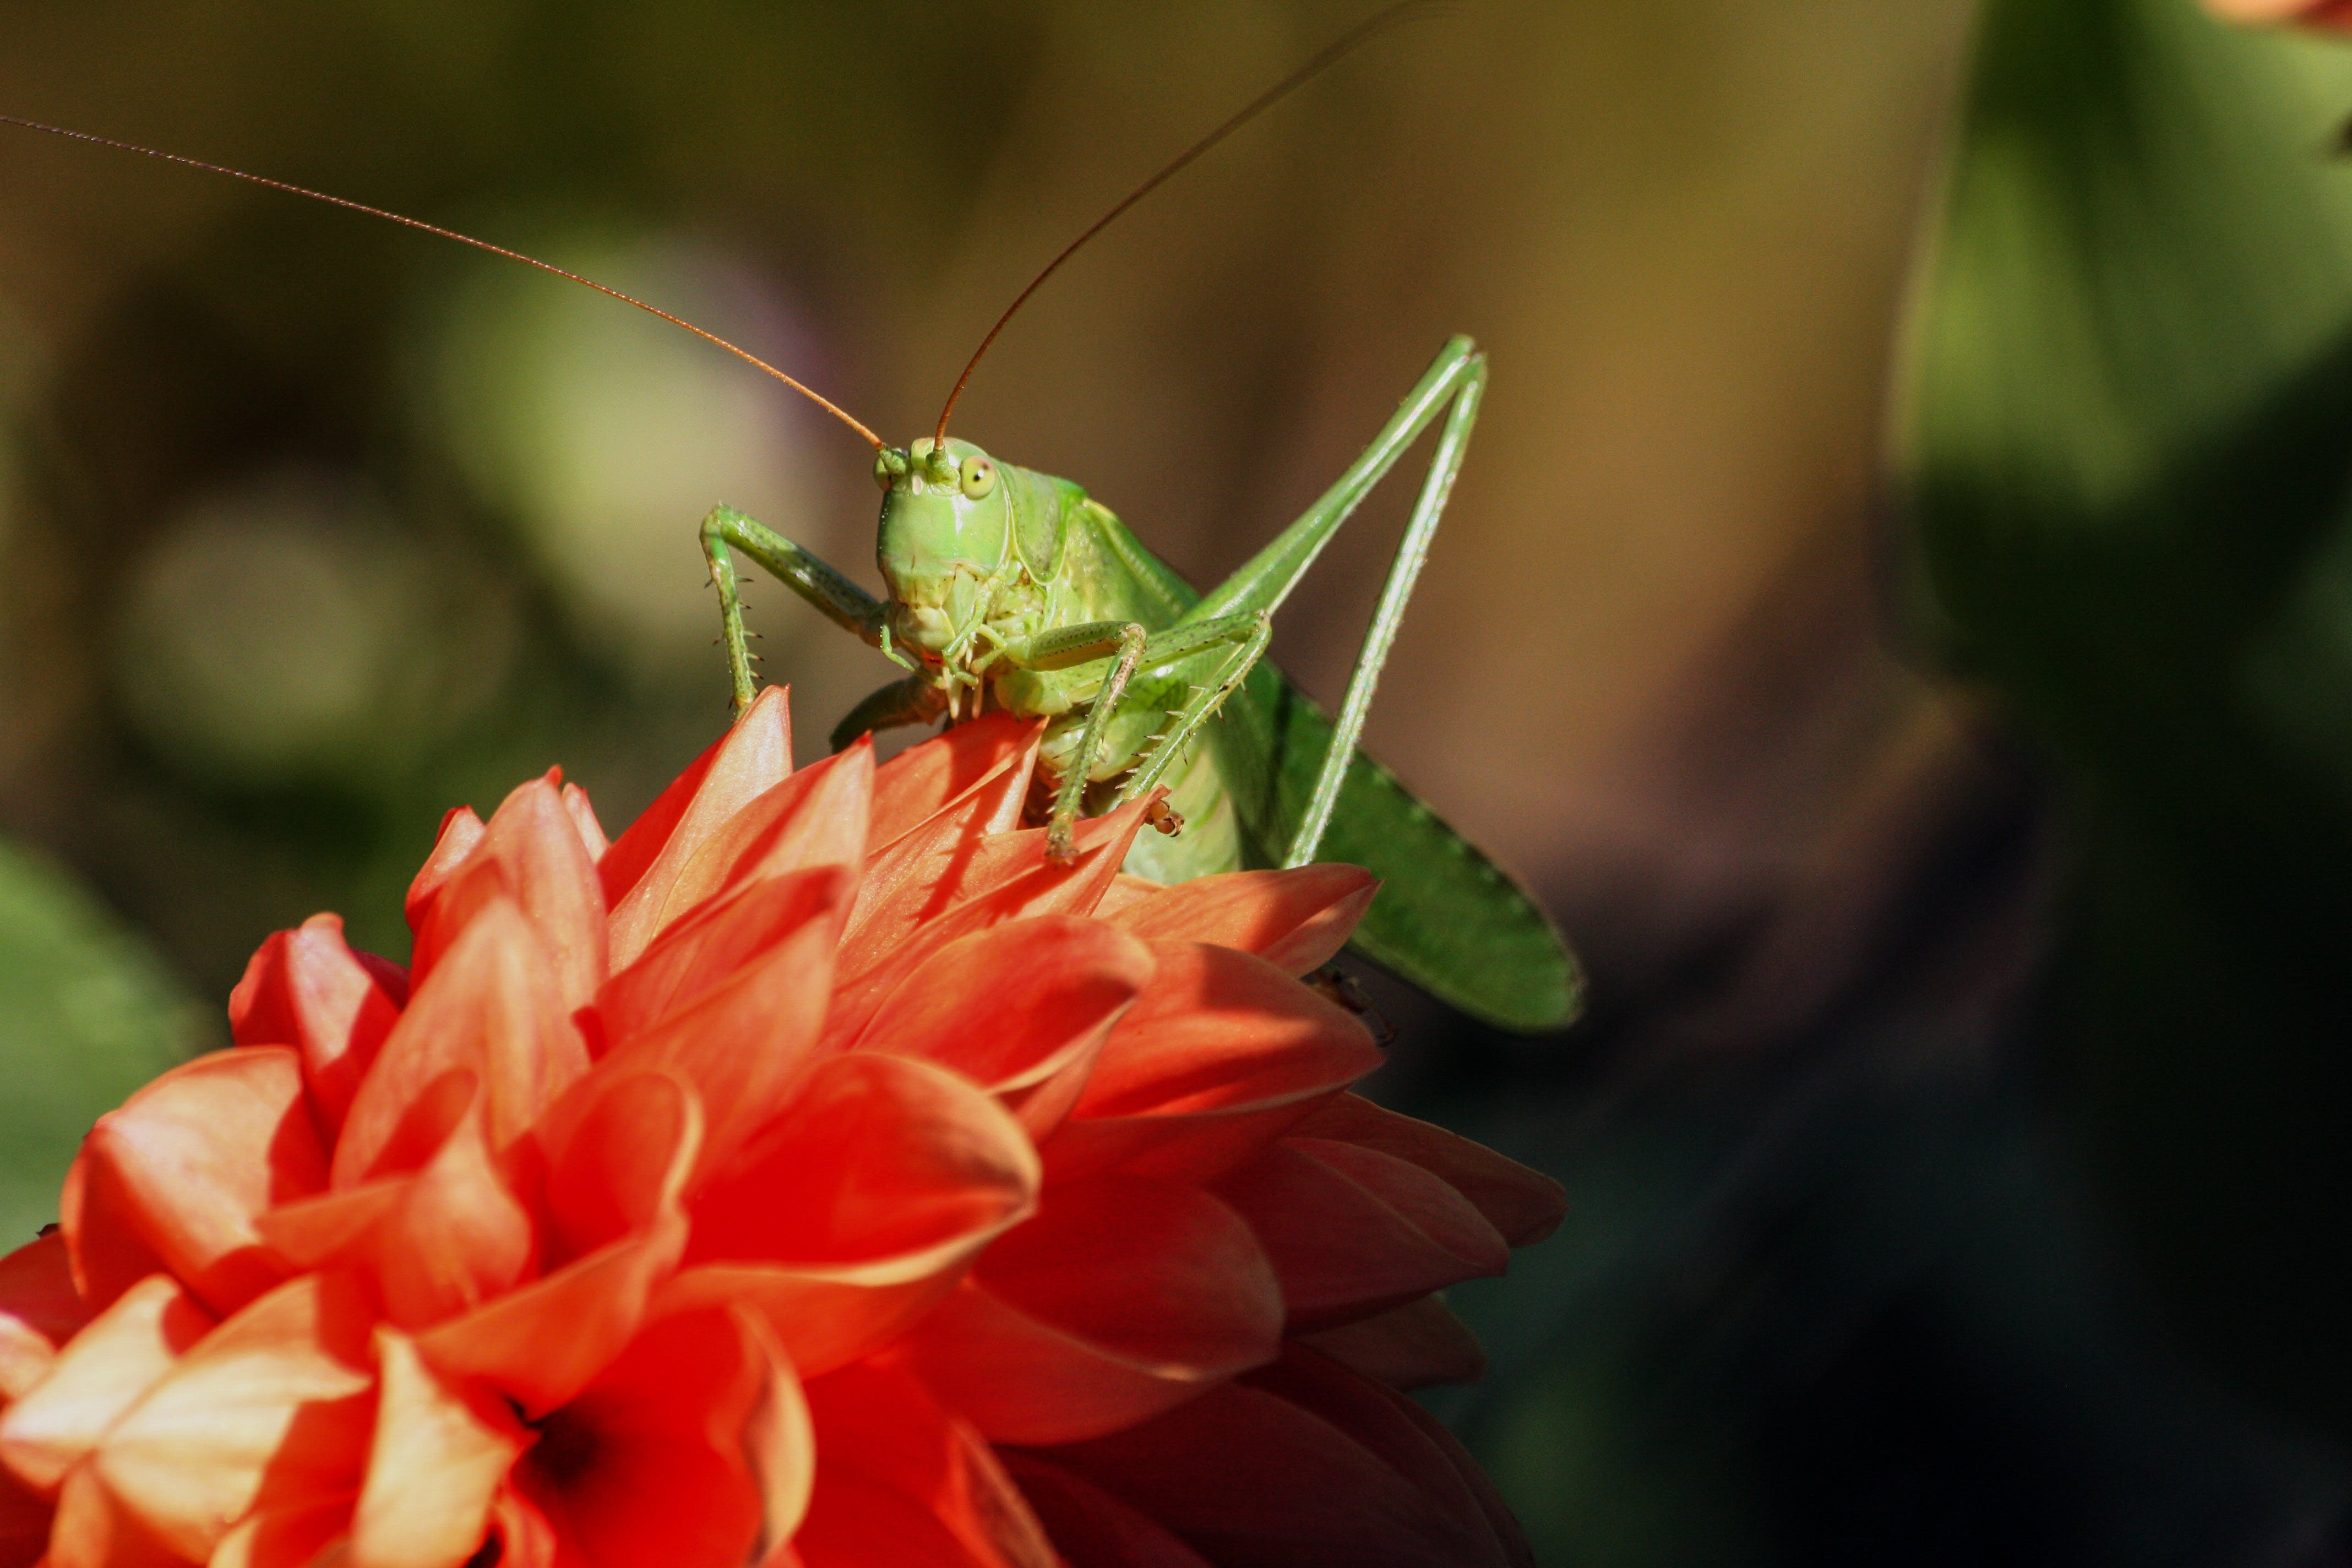 Green Grasshopper on Red Flower during Daytime